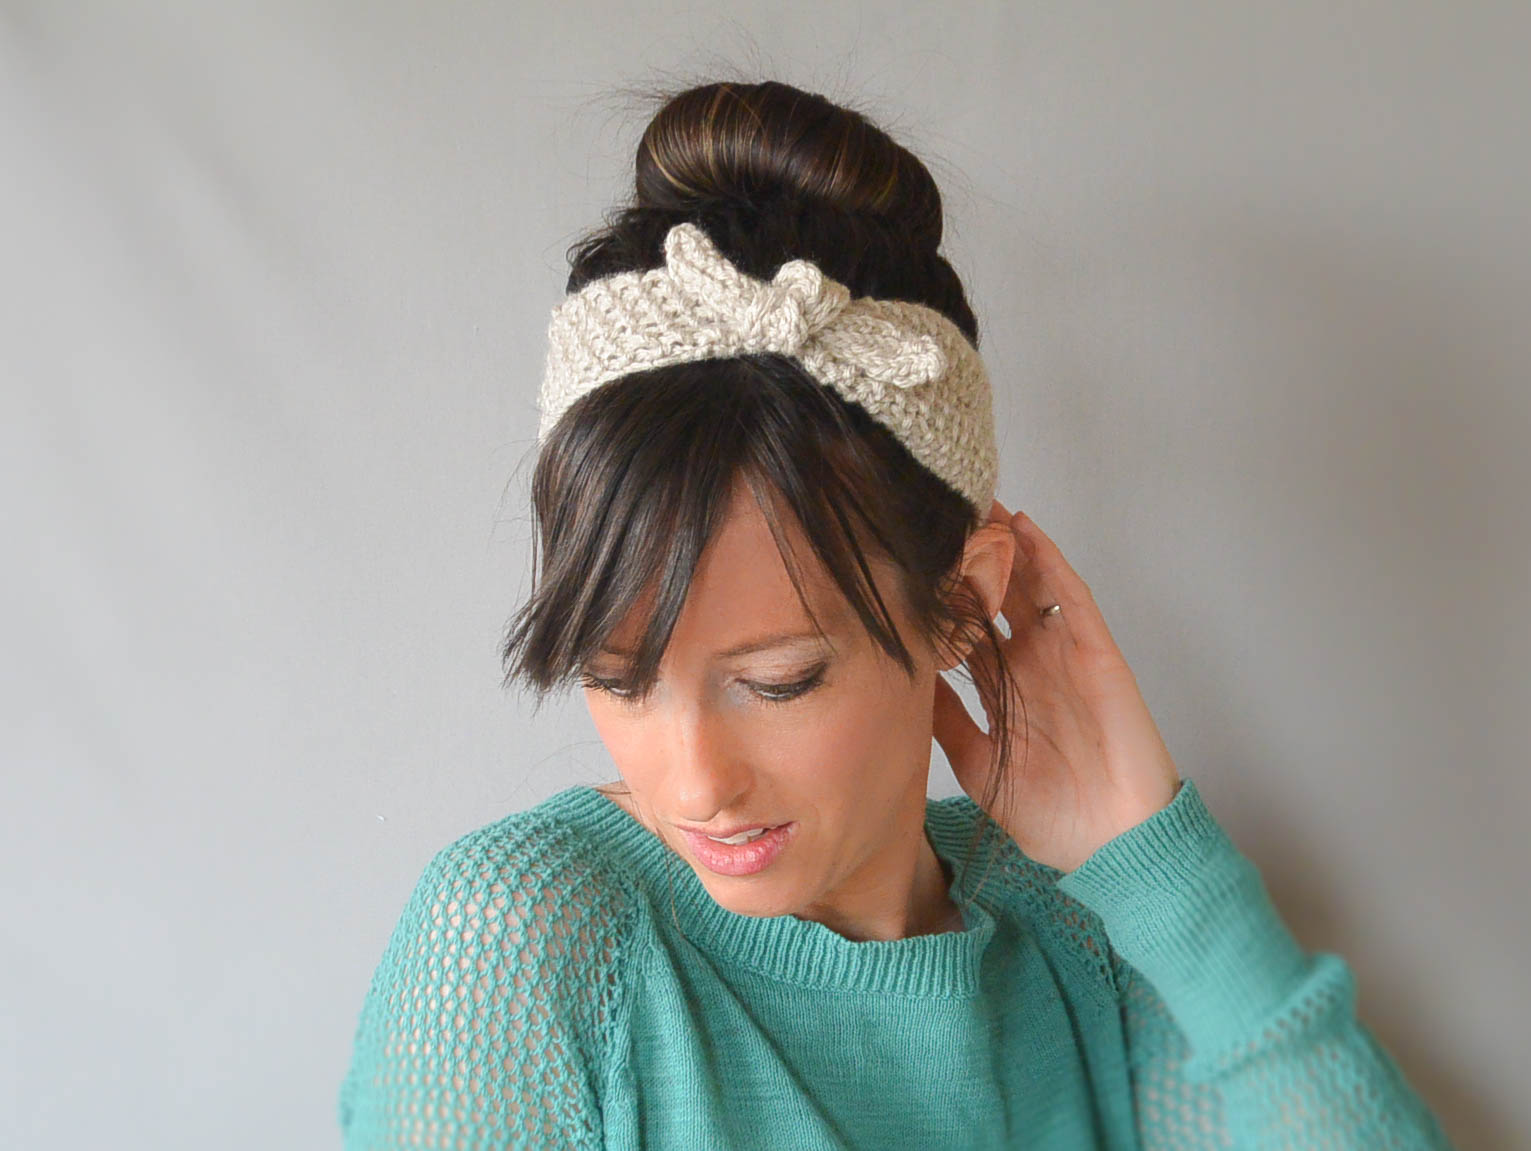 Vintage Knit Tie Headband Pattern – Mama In A Stitch